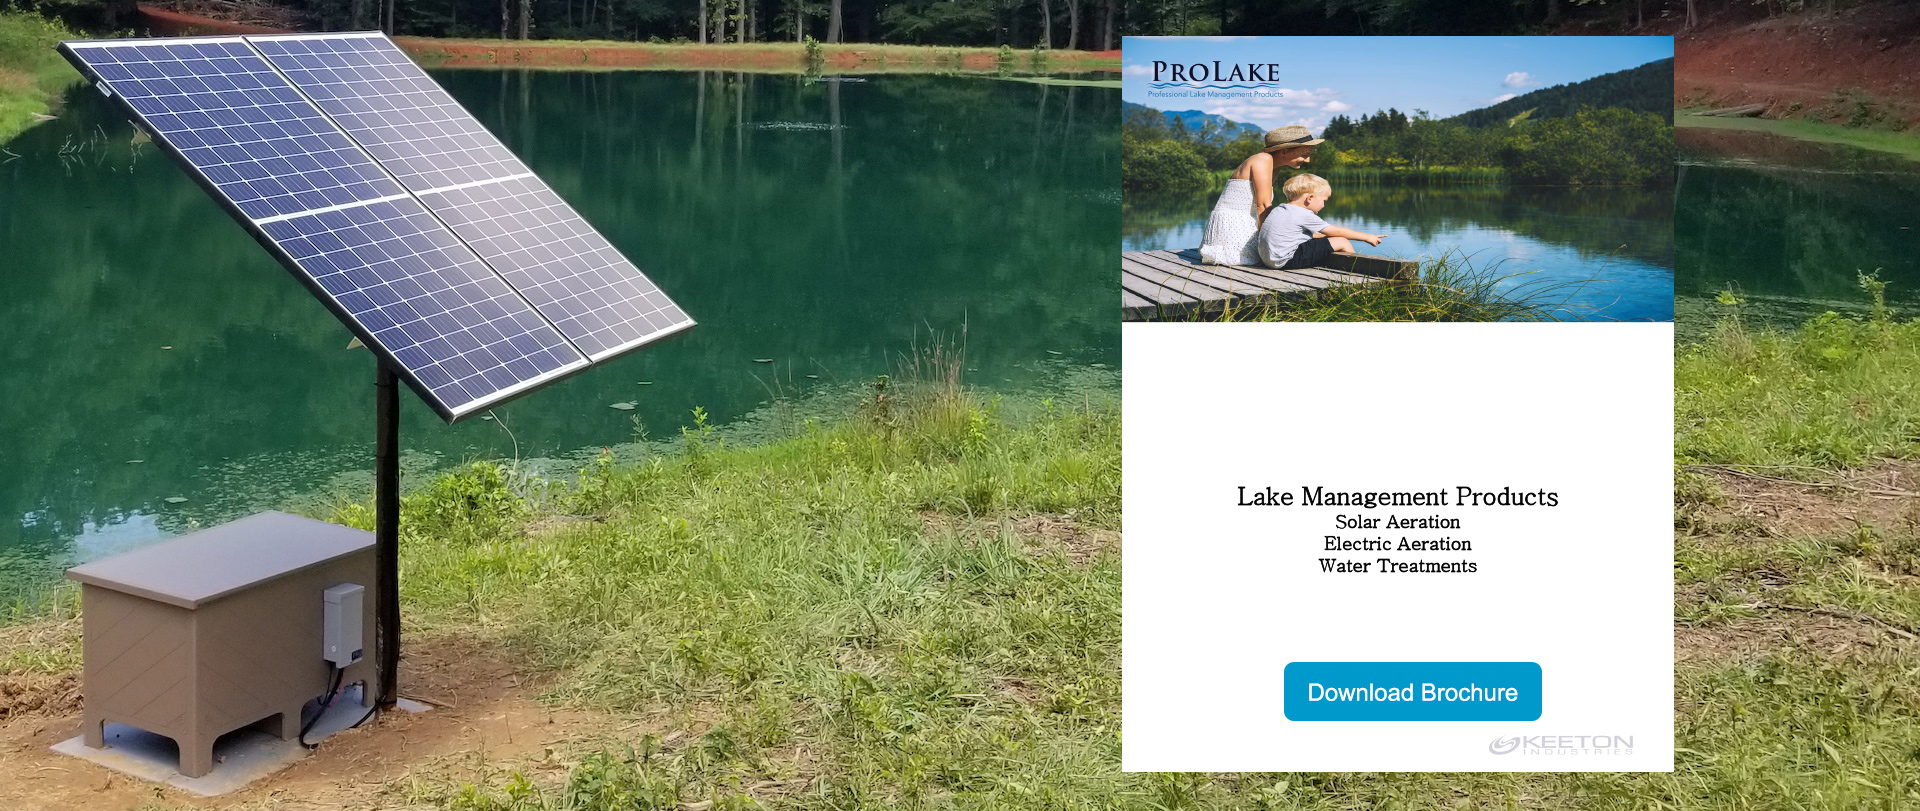 Solared Powered Aeration from ProLake Lake Management Products